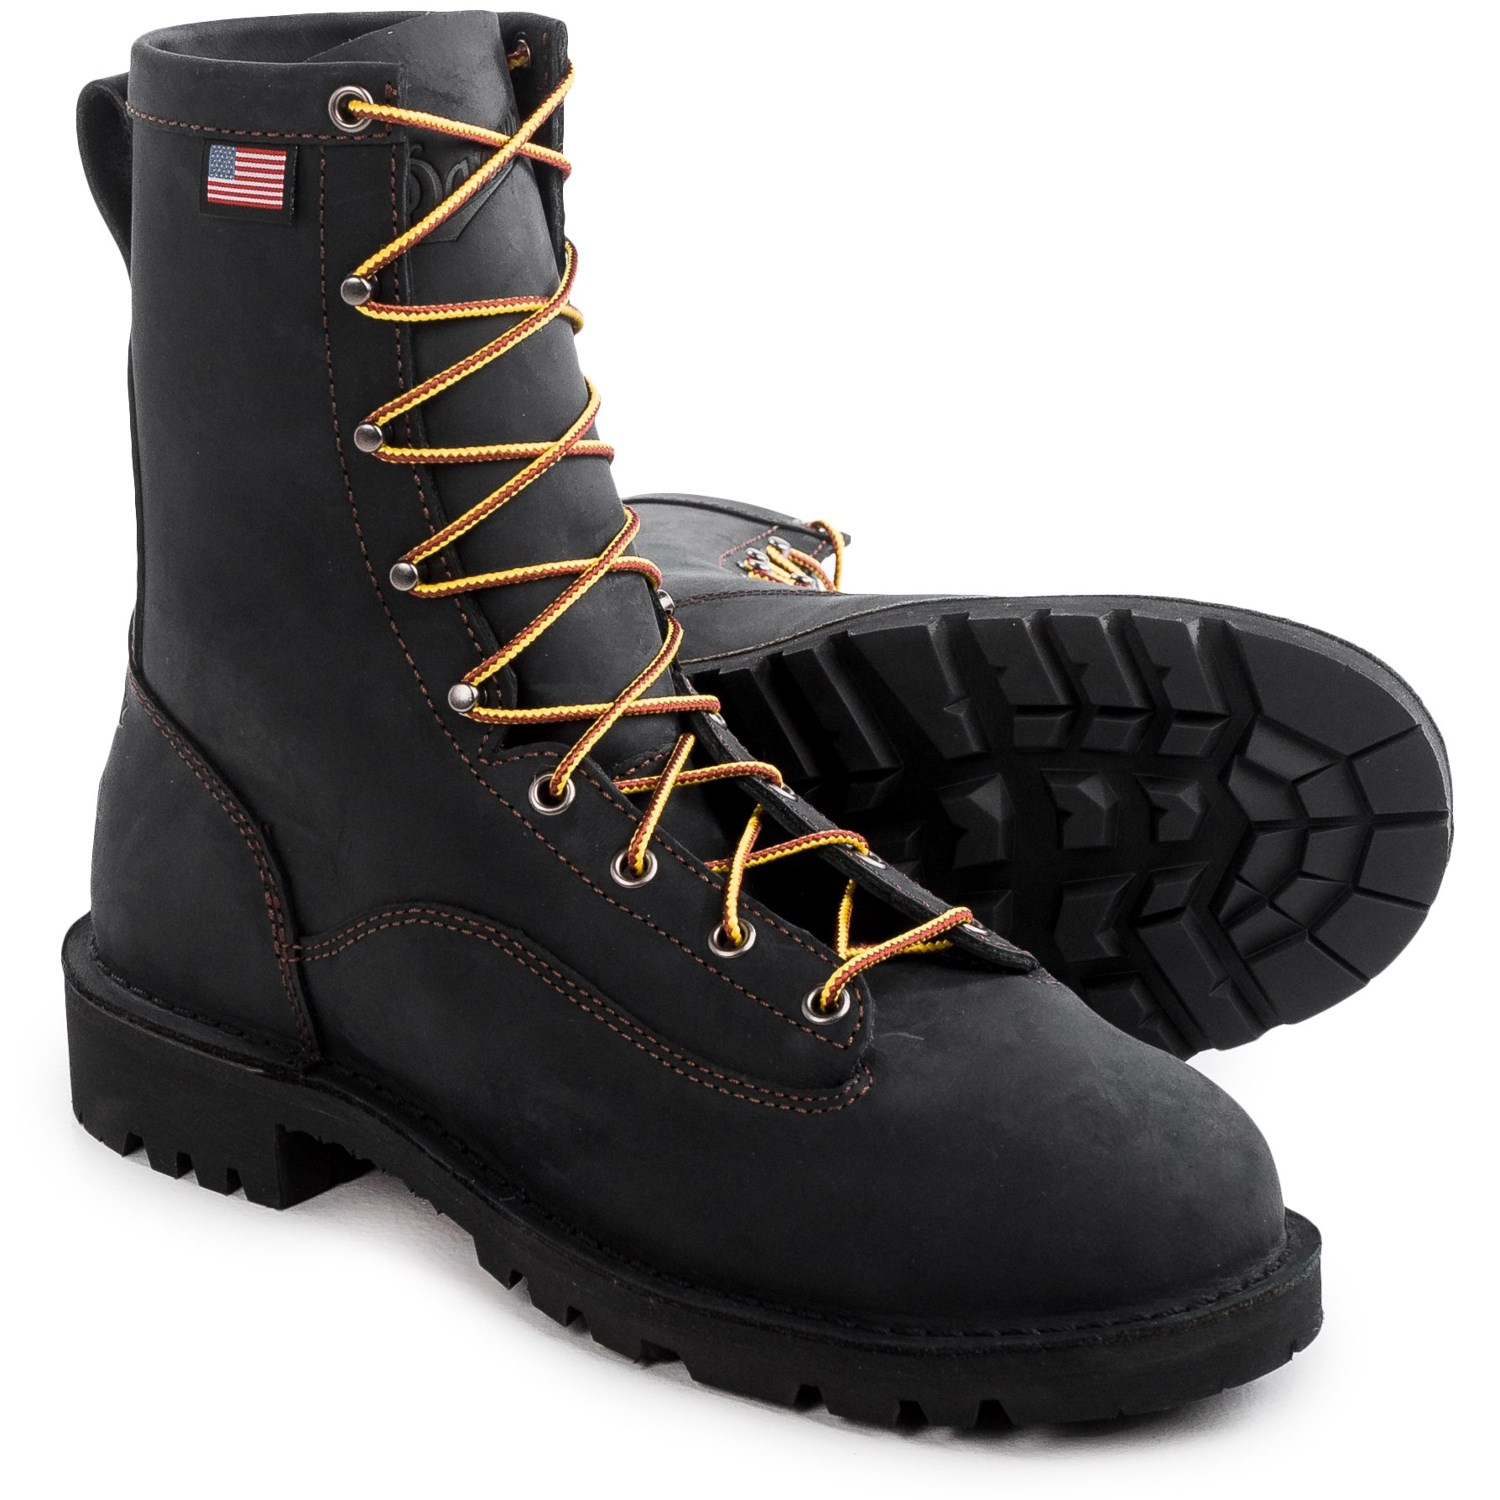 Danner Steel Toe Work Boots Boot Hto